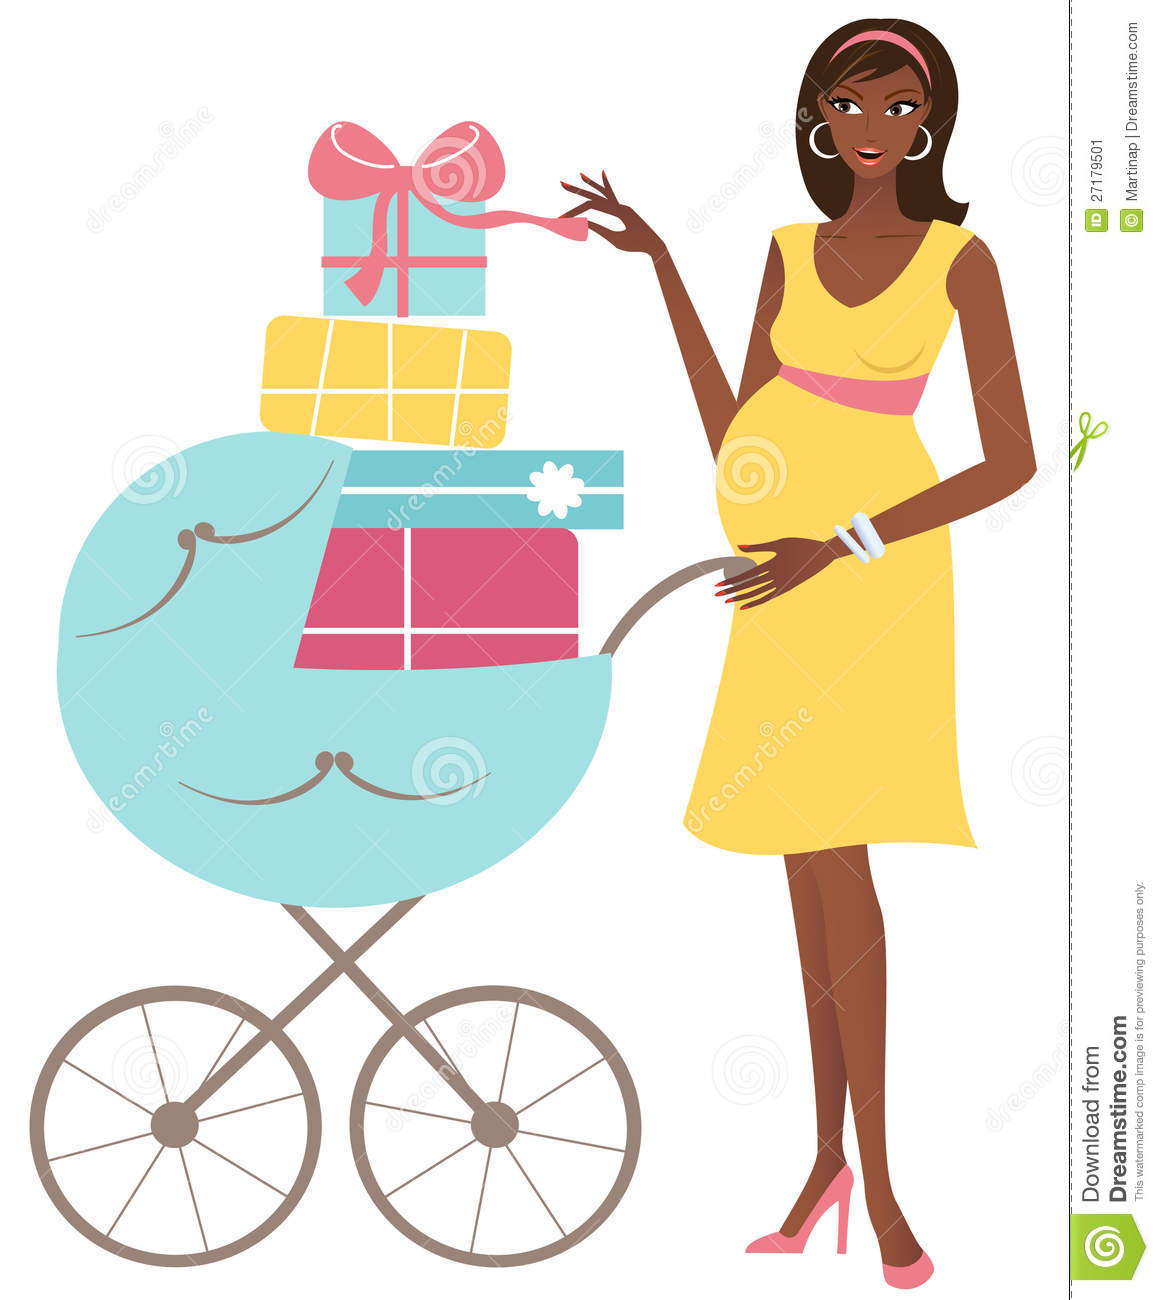 ... african-american pregnant woman with a stroller full of presents Baby Stroller Cartoon